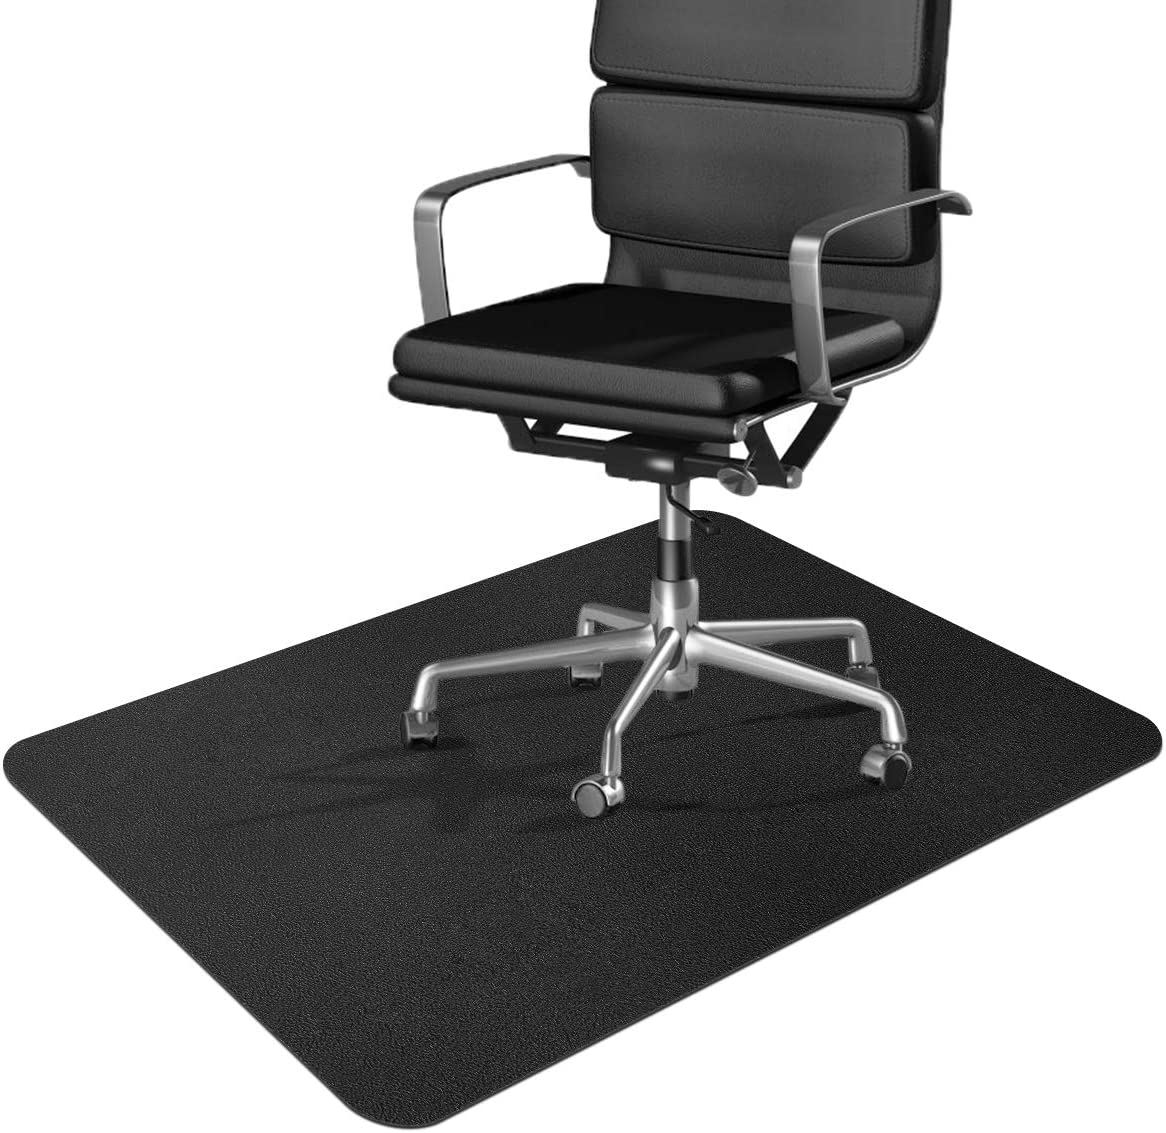 Chair Mats for Carpeted Floors, 36